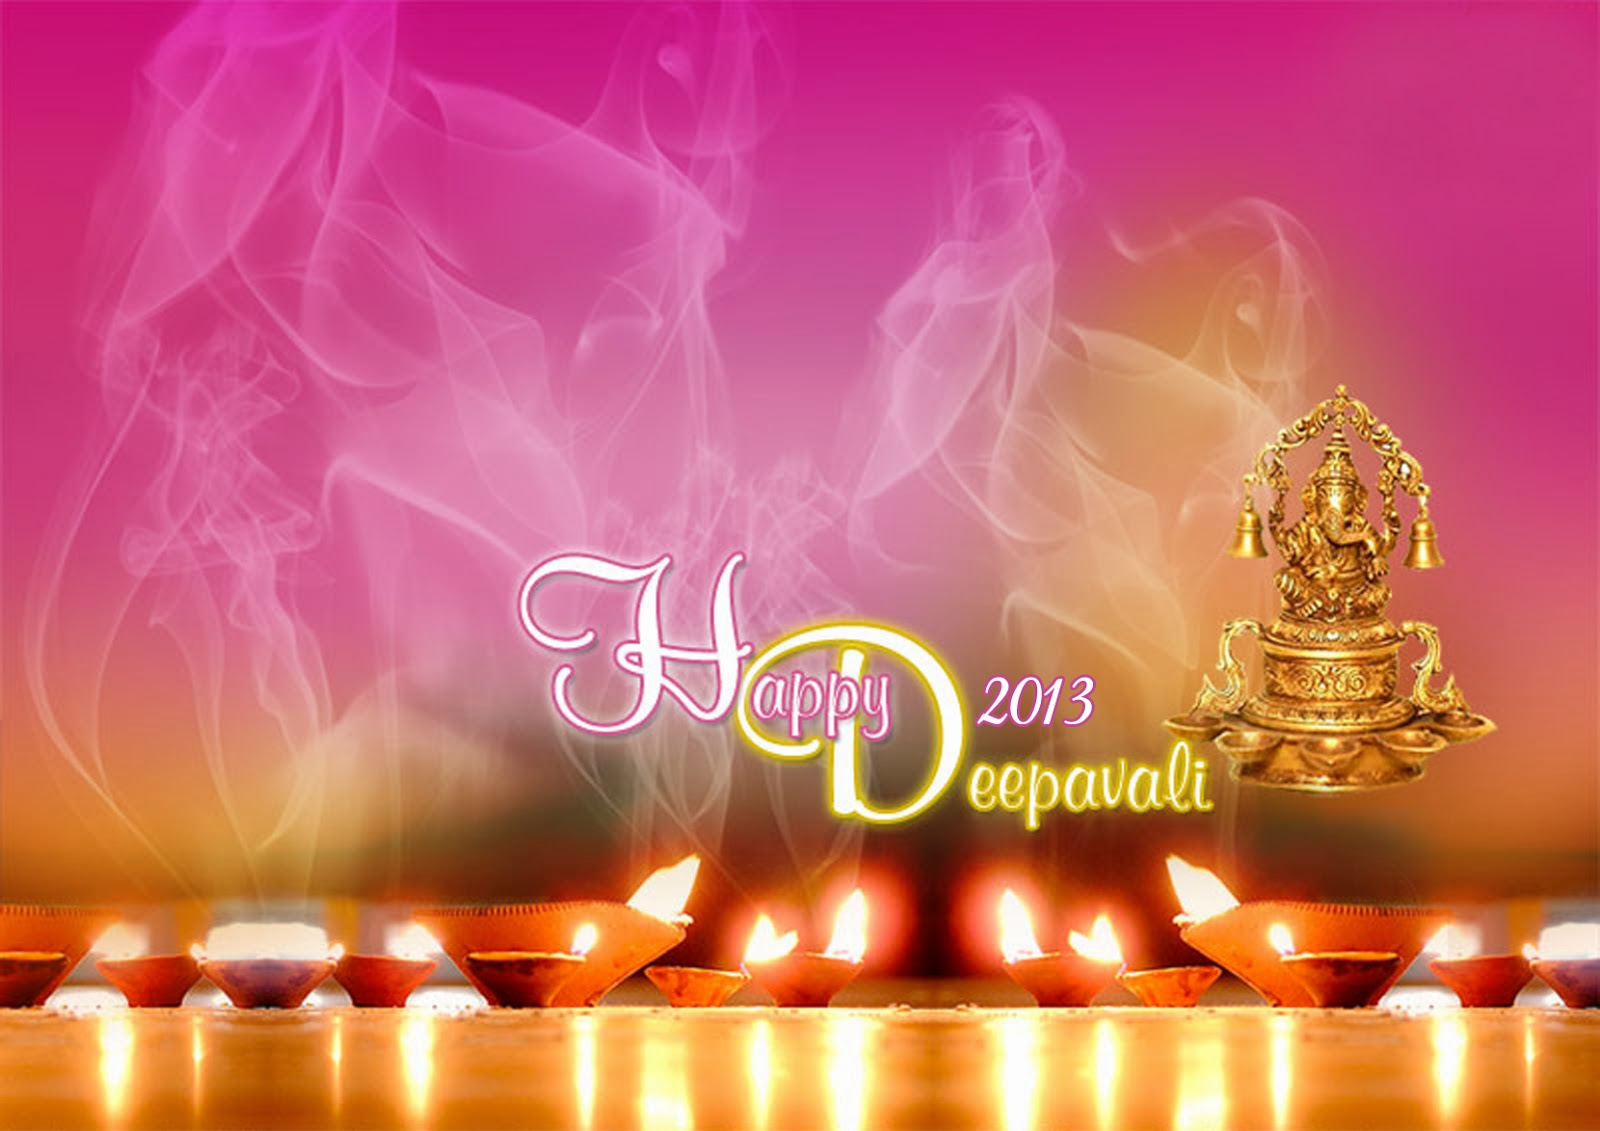 Happy Diwali Wallpapers And Backgrounds: Beautiful Happy Diwali Wallpapers And Greetings For Year 2017